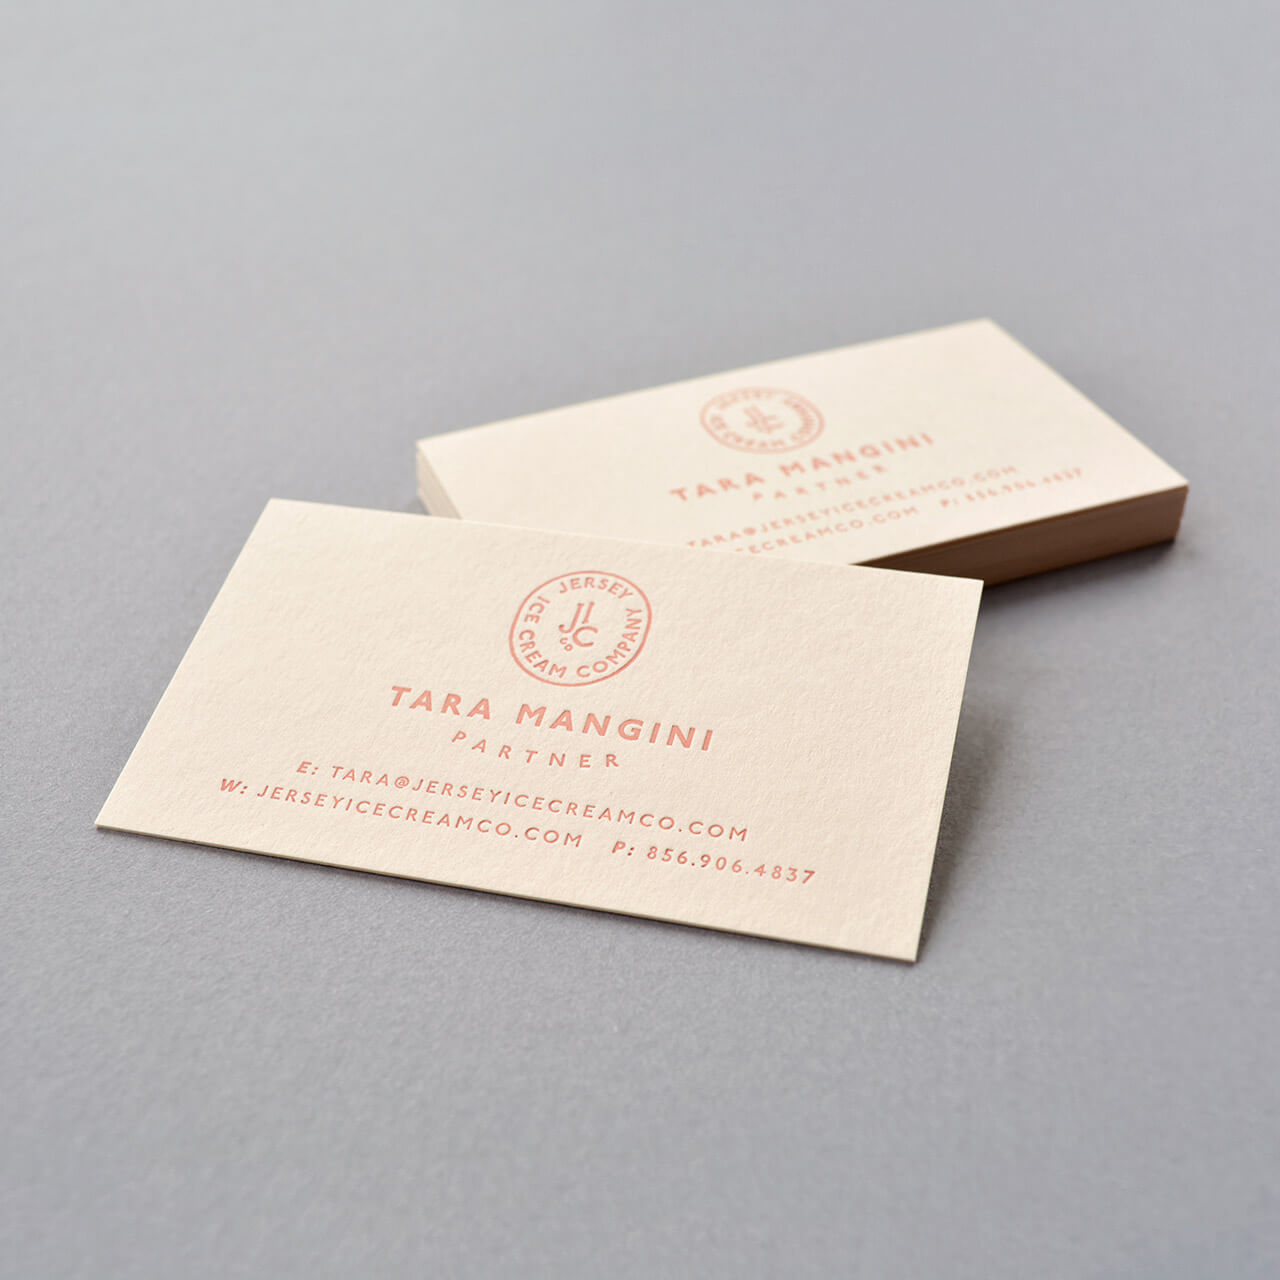 bueno-work-jersey-ice-cream-co-business-card-close-up